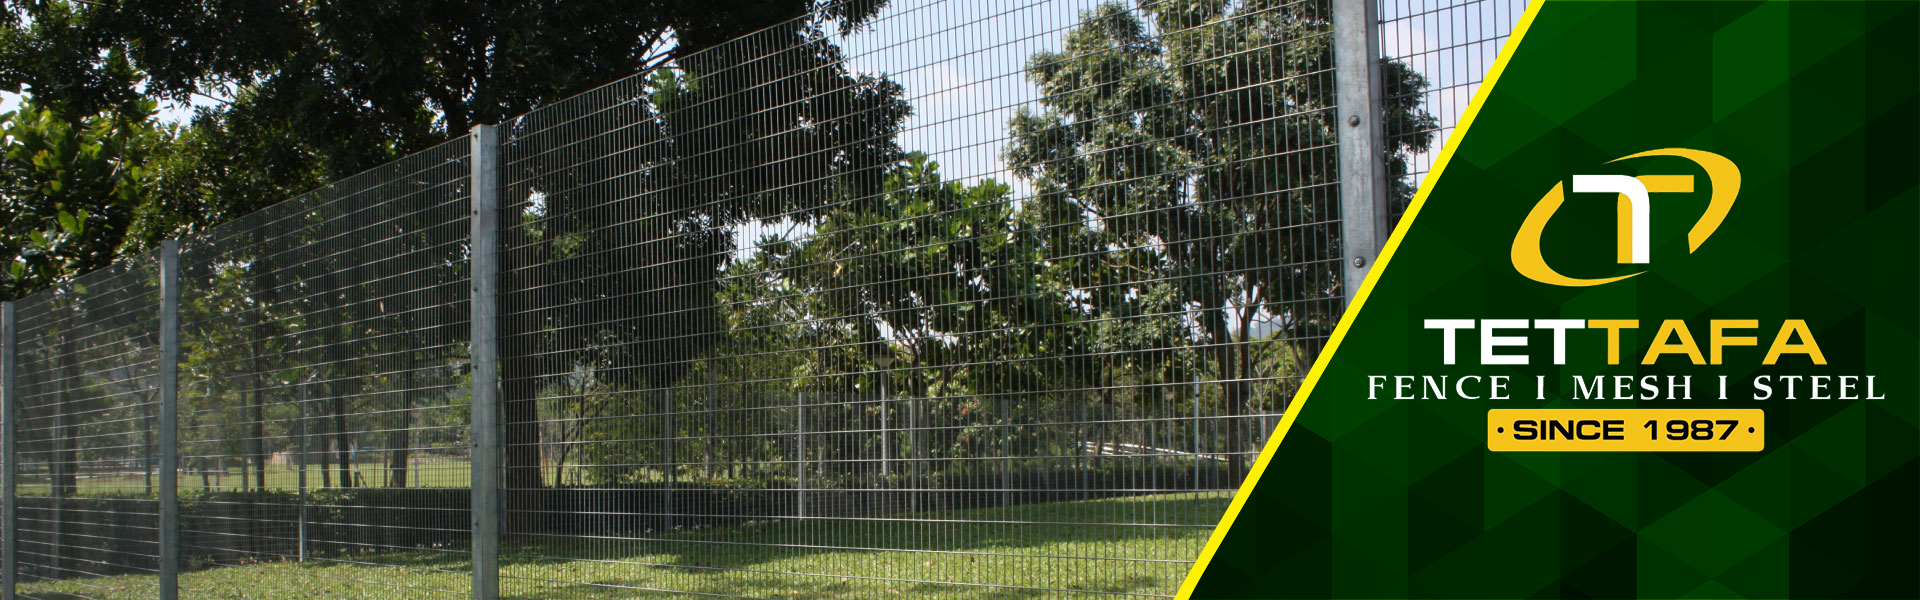 Malaysia Security Fence: Wire Mesh and Barbed Wire | TET Tafa